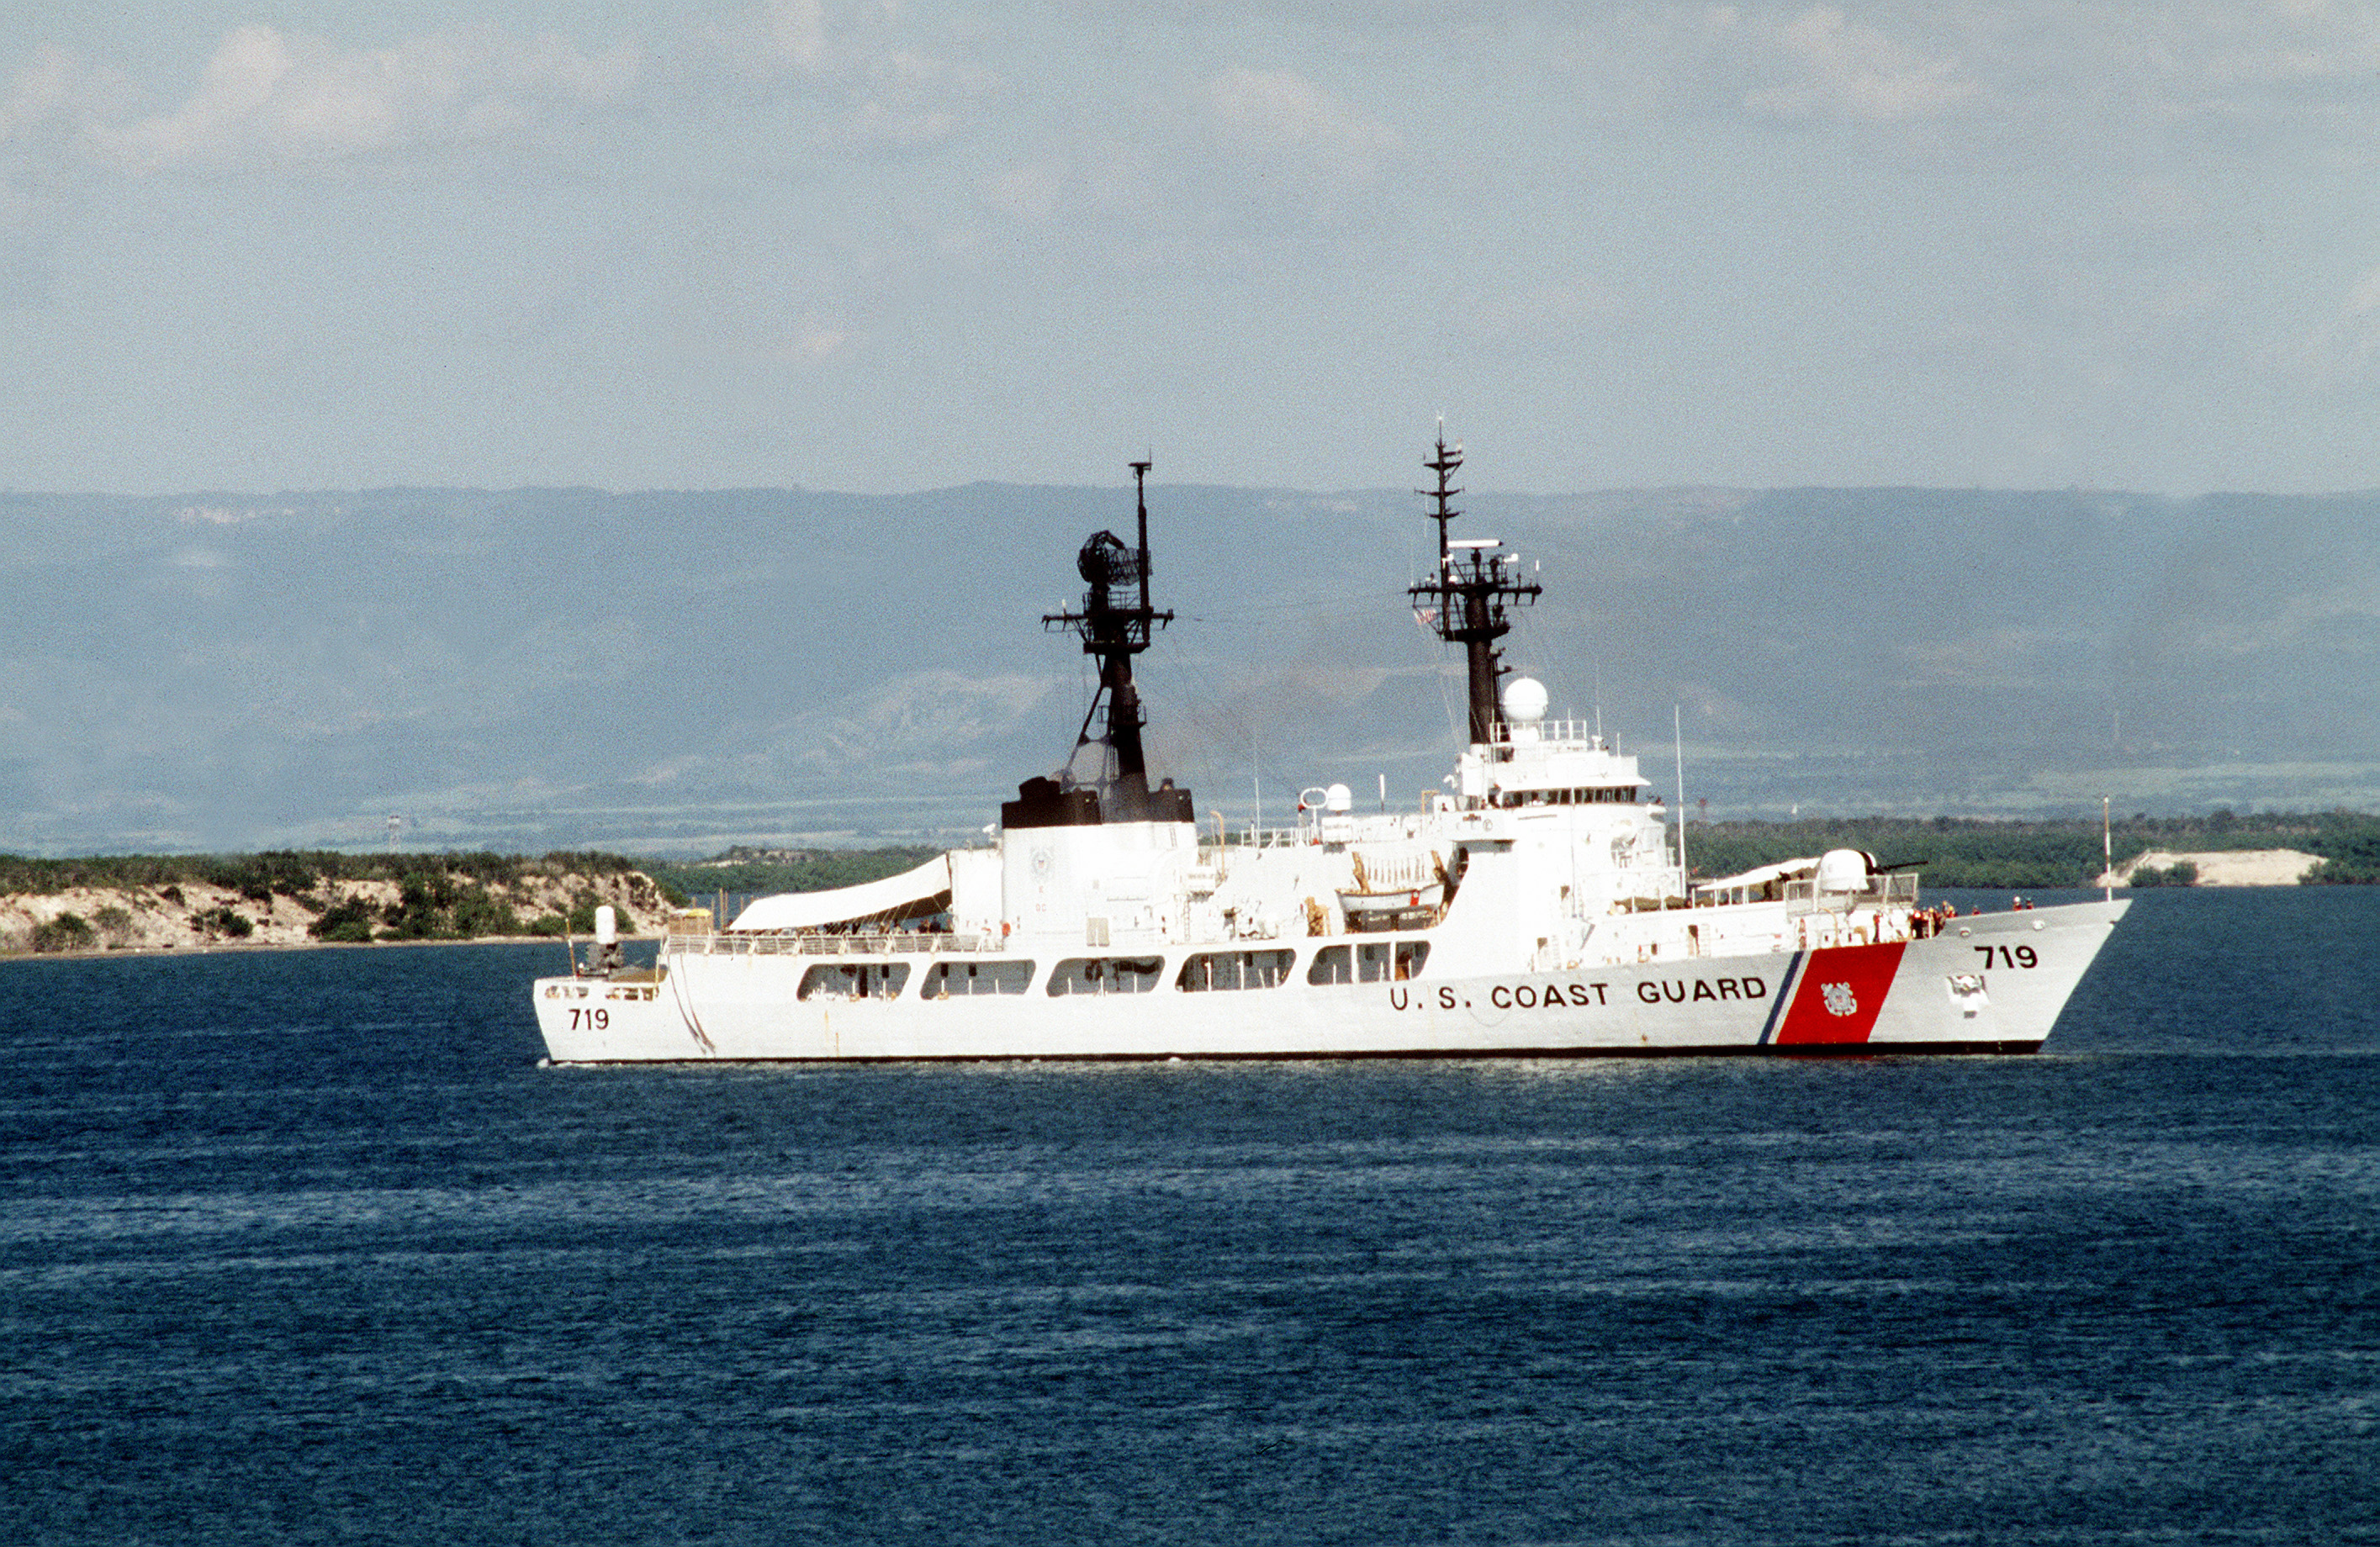 https://upload.wikimedia.org/wikipedia/commons/7/7a/USCGC_Boutwell_WHEC-719.jpg